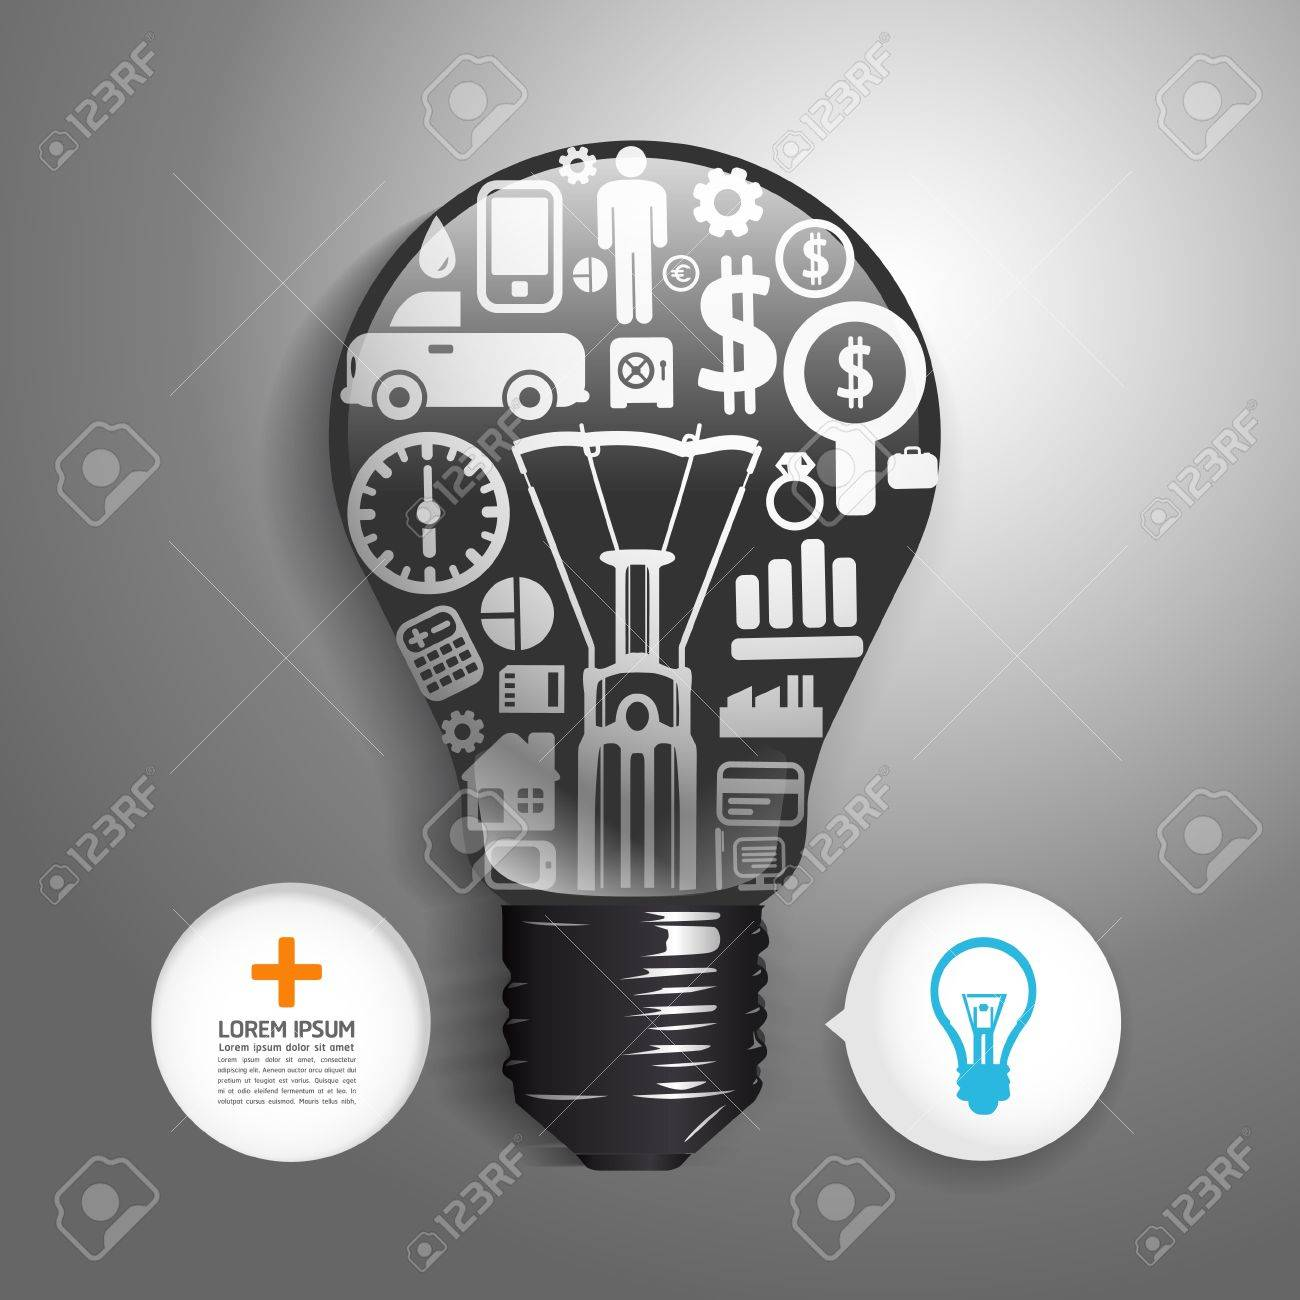 Elements are small icons Finance make  light bulb think concept Stock Vector - 20743856